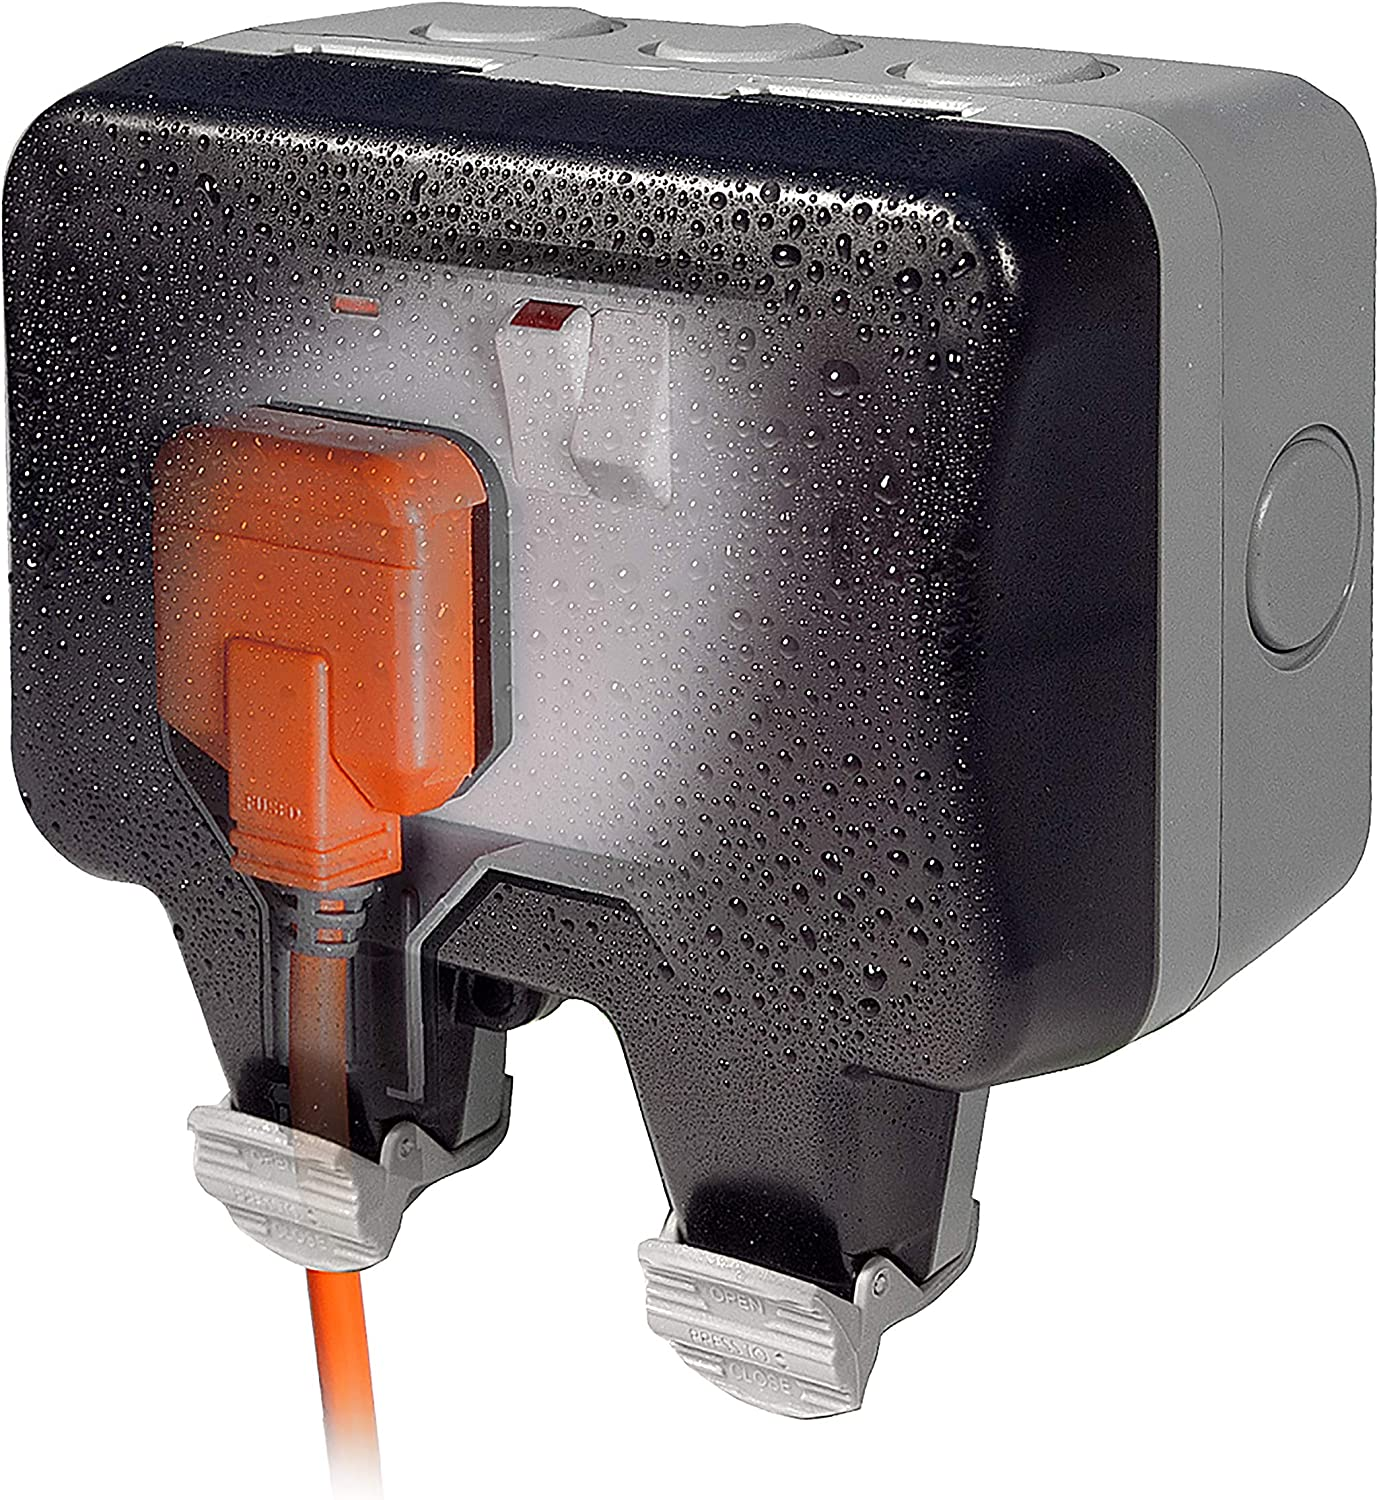 EXTERNAL OUTDOOR MAINS POWER TWIN 13a SOCKET IP55 230v decking patio shed garage